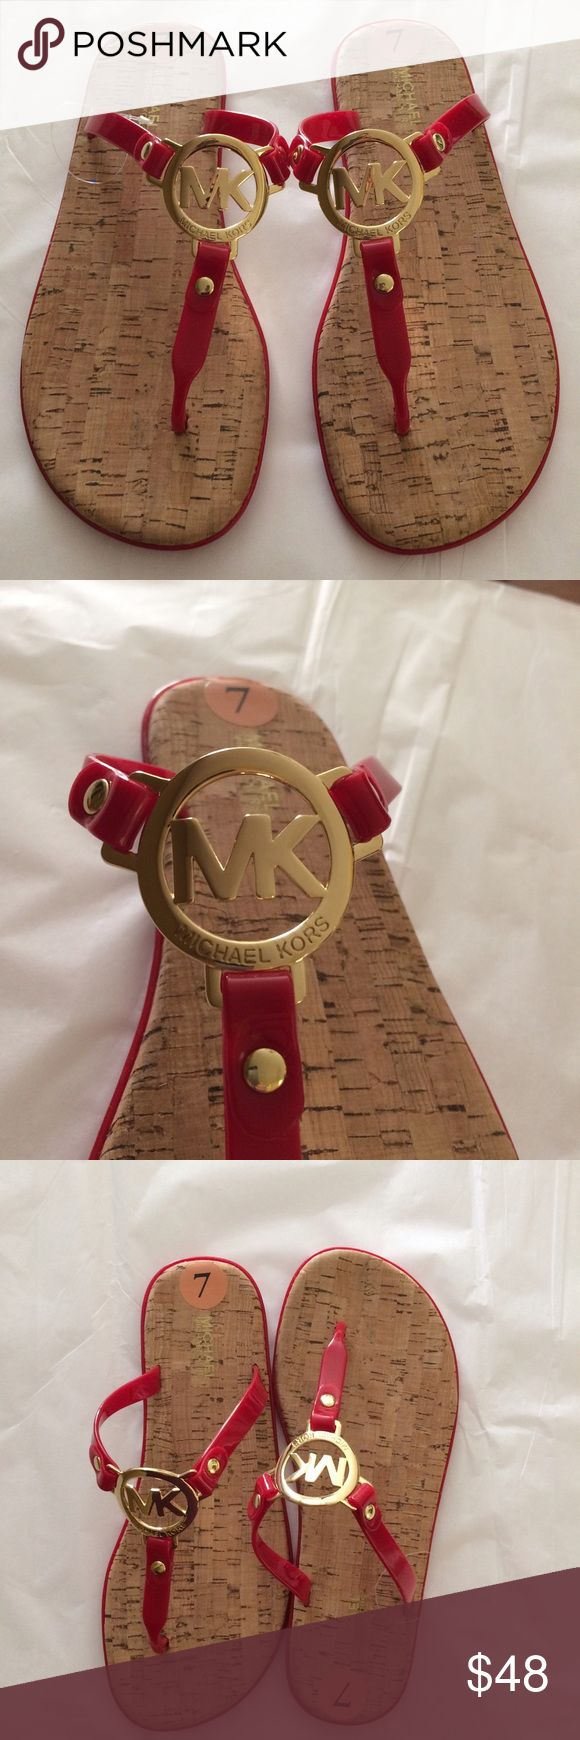 🌷⚜️Host Pick ⚜️🌷Michael Kors Flip Flops ☀️ ☀️🌴 Gorgeous Red Jelly Sandals by designer Michael Kors featuring gold plated logo stamped MK! Perfect for Spring and Summer! So kick off those winter boots and show your cute feet in designer flip flops! Never Worn without Box! ☀️🌴 Michael Kors Shoes Sandals